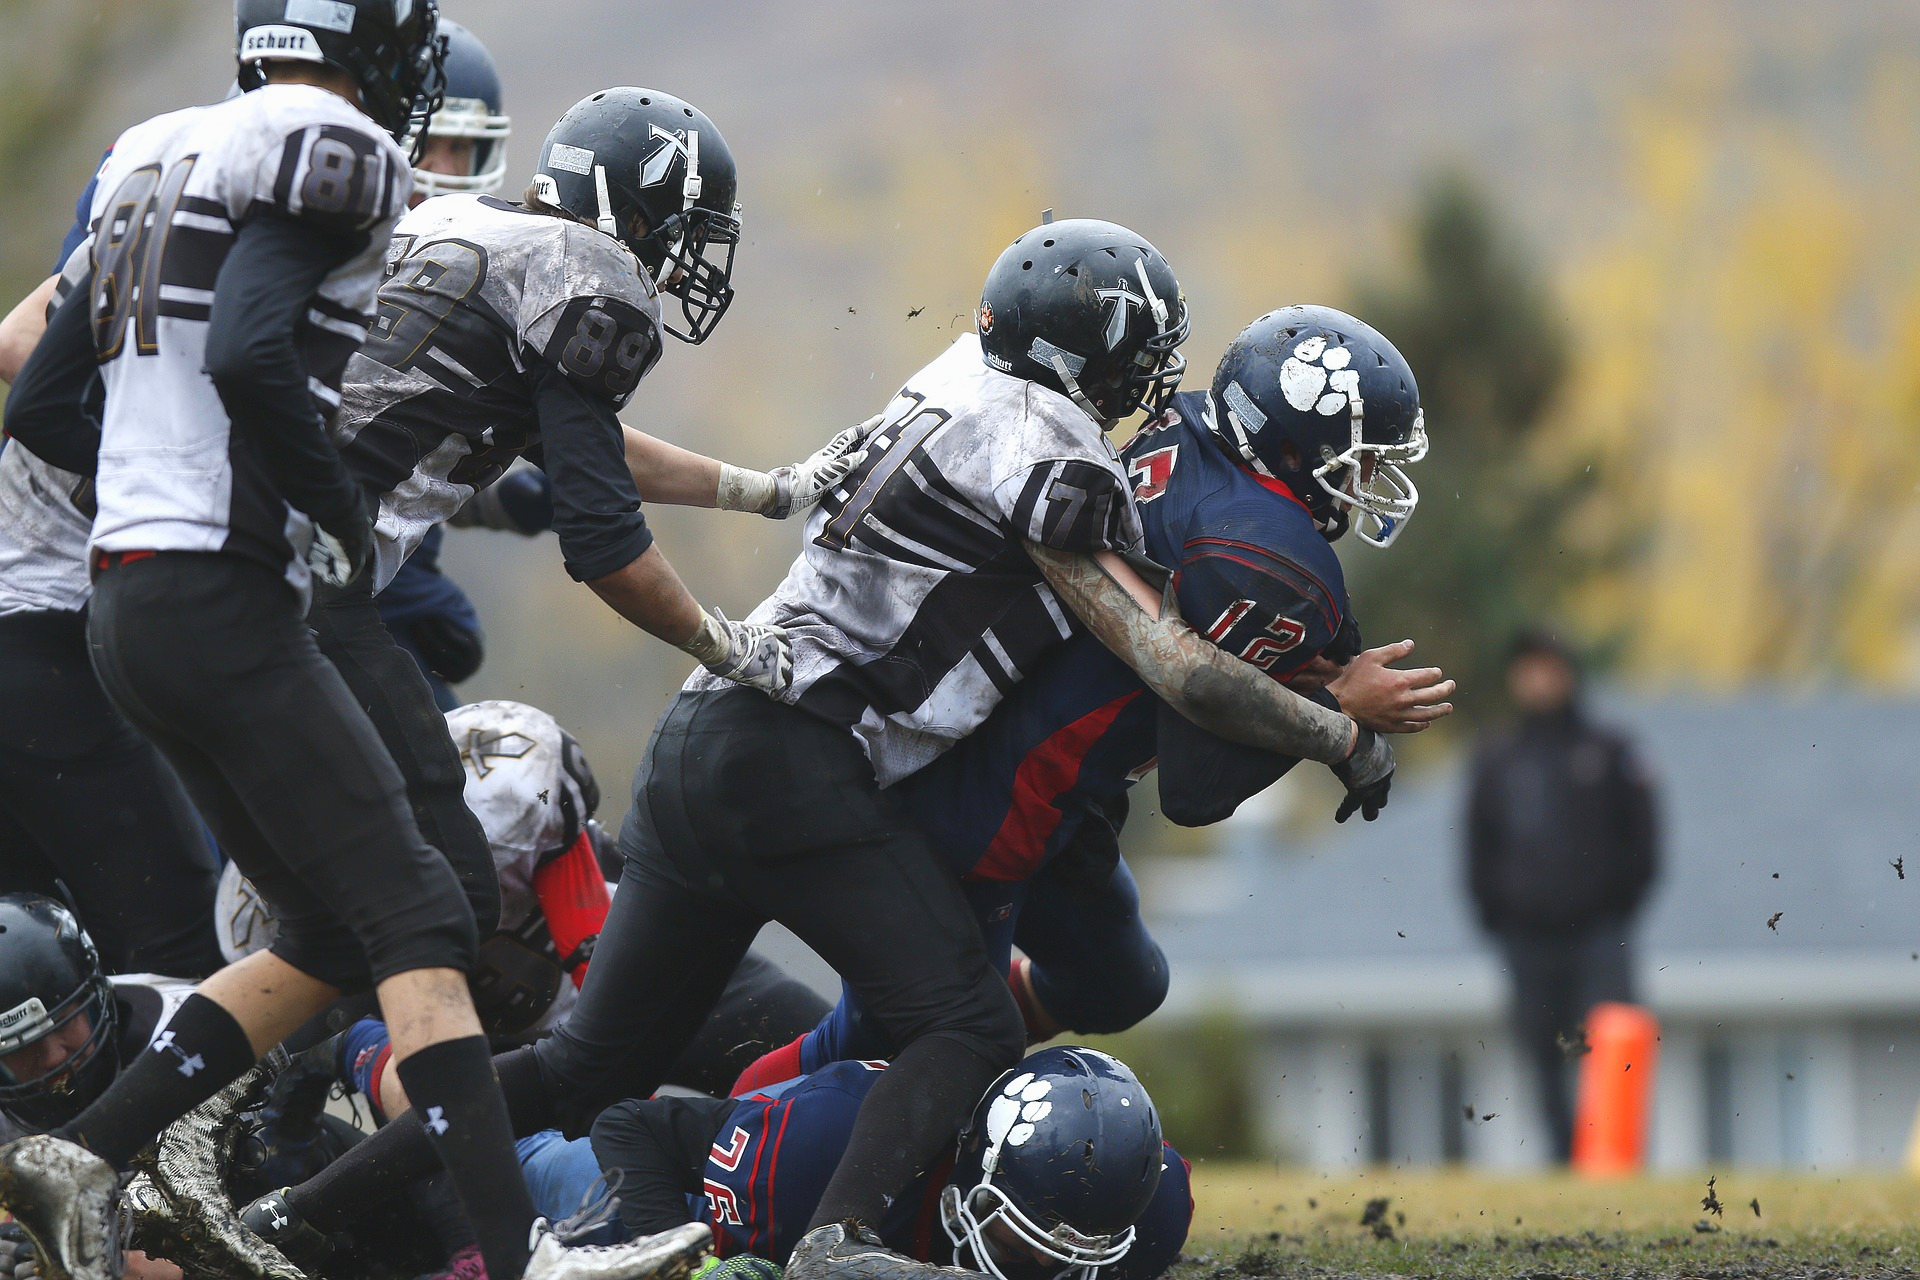 Should school districts ban contact sports with potential for concussions?